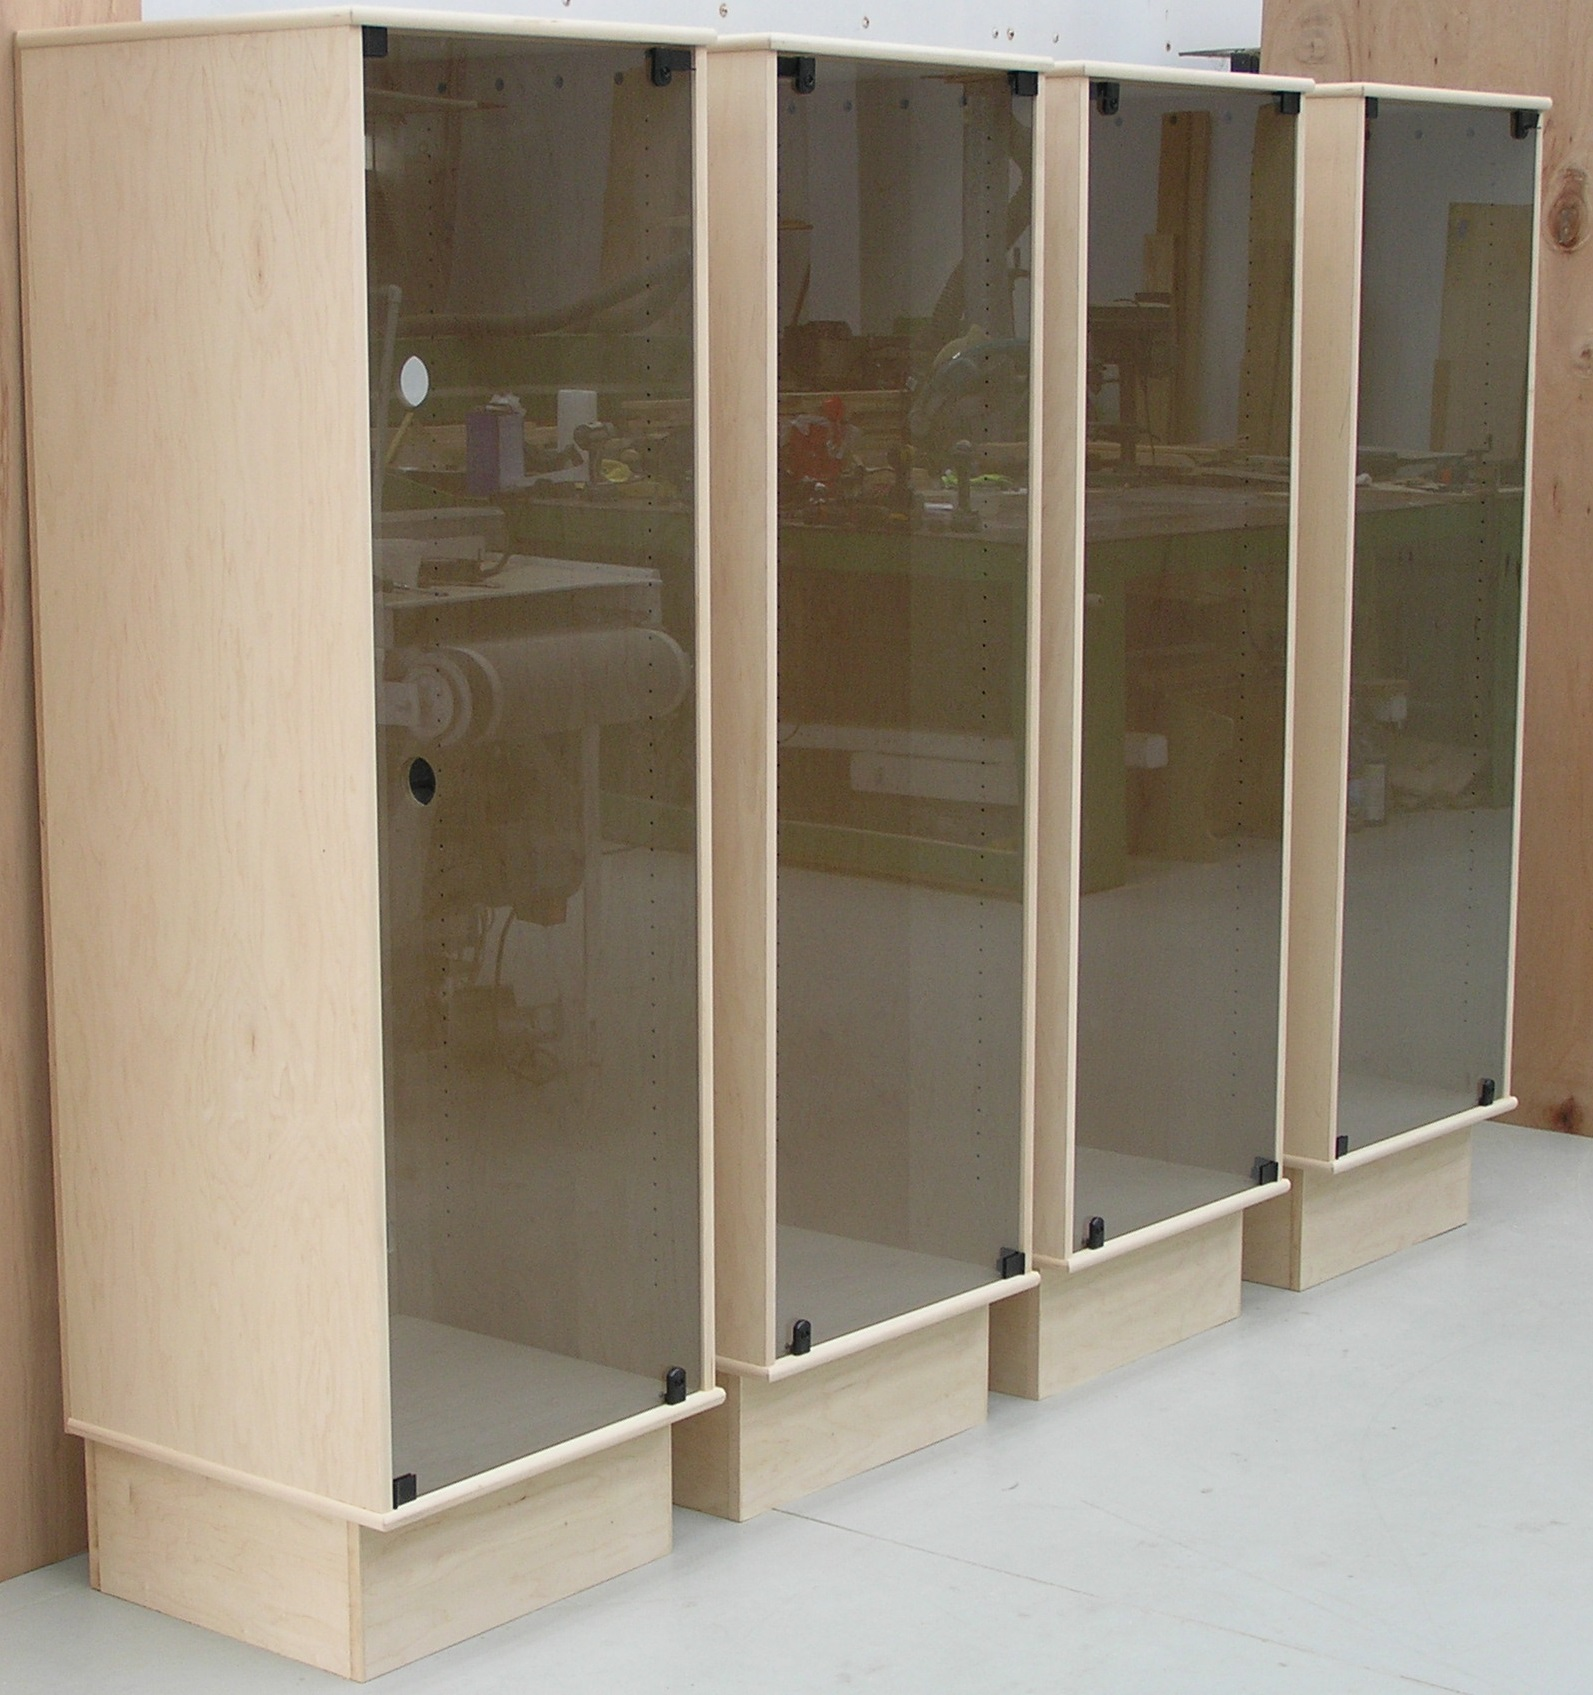 A group of 4 SC2272 maple with a single glass door with locks by decibeldesigns.com